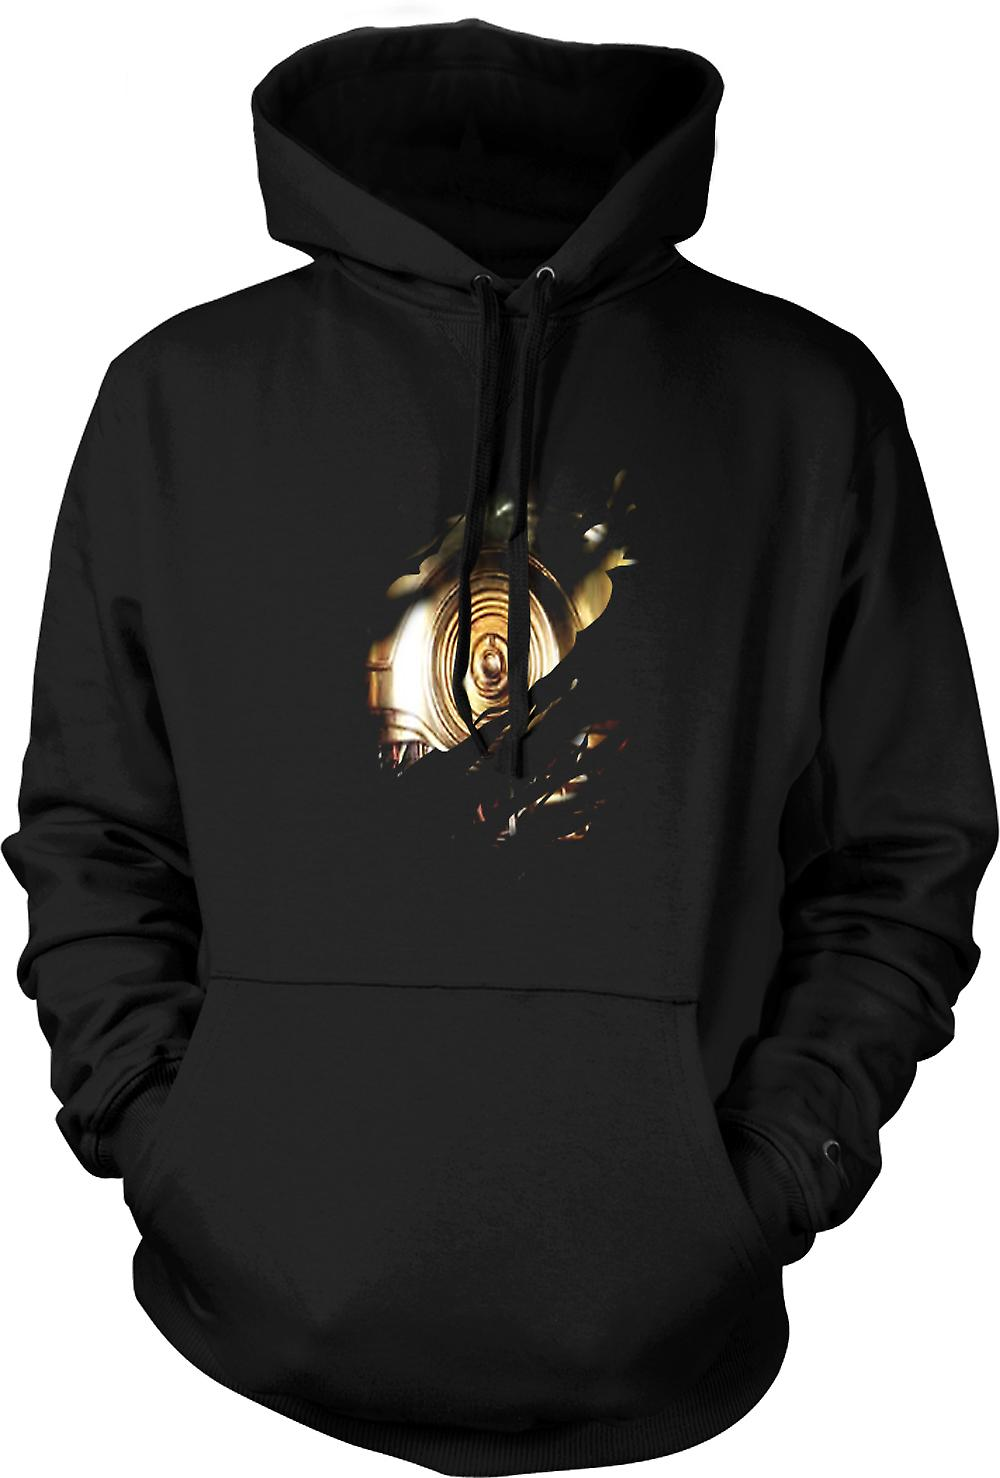 Mens Hoodie - C3PO Star Wars Inspired Ripped Design